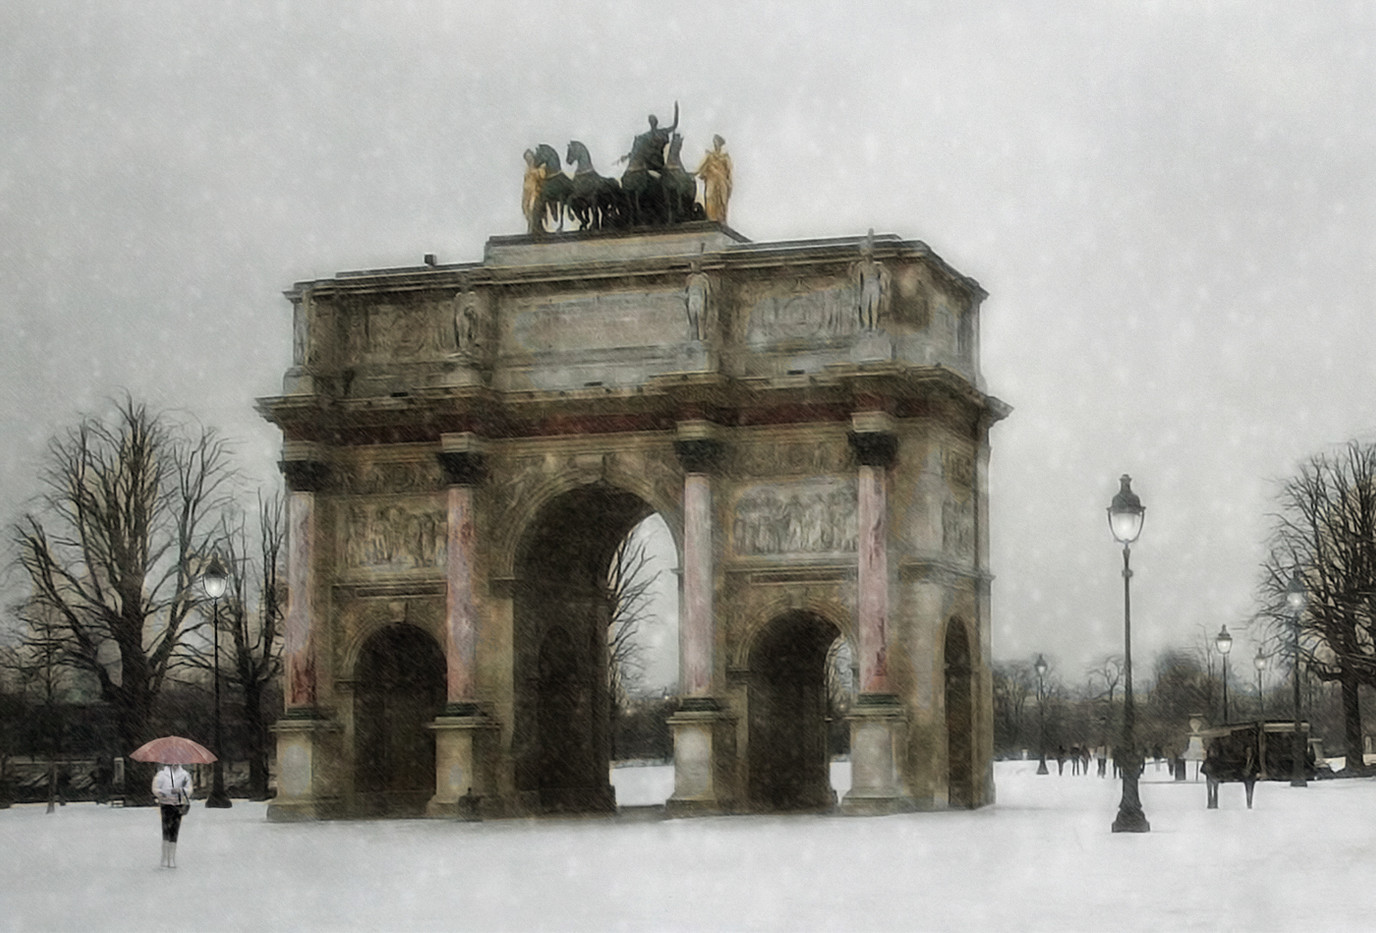 20 SNOW IN PARIS by Pam Sherren